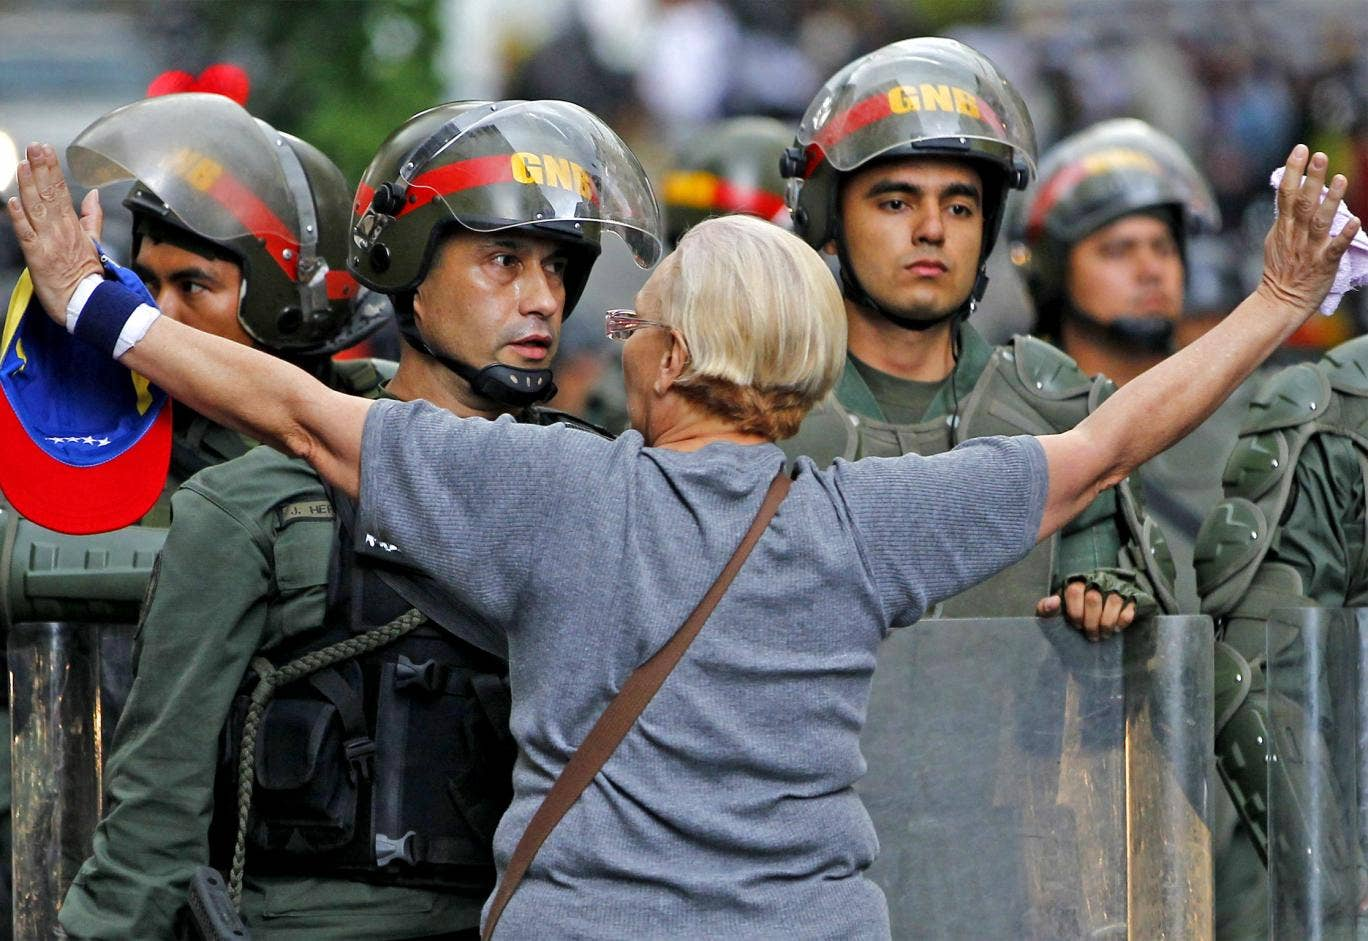 An opposition supporter shouts at a riot police officer during a protest against President Nicolas Maduro's government in Caracas